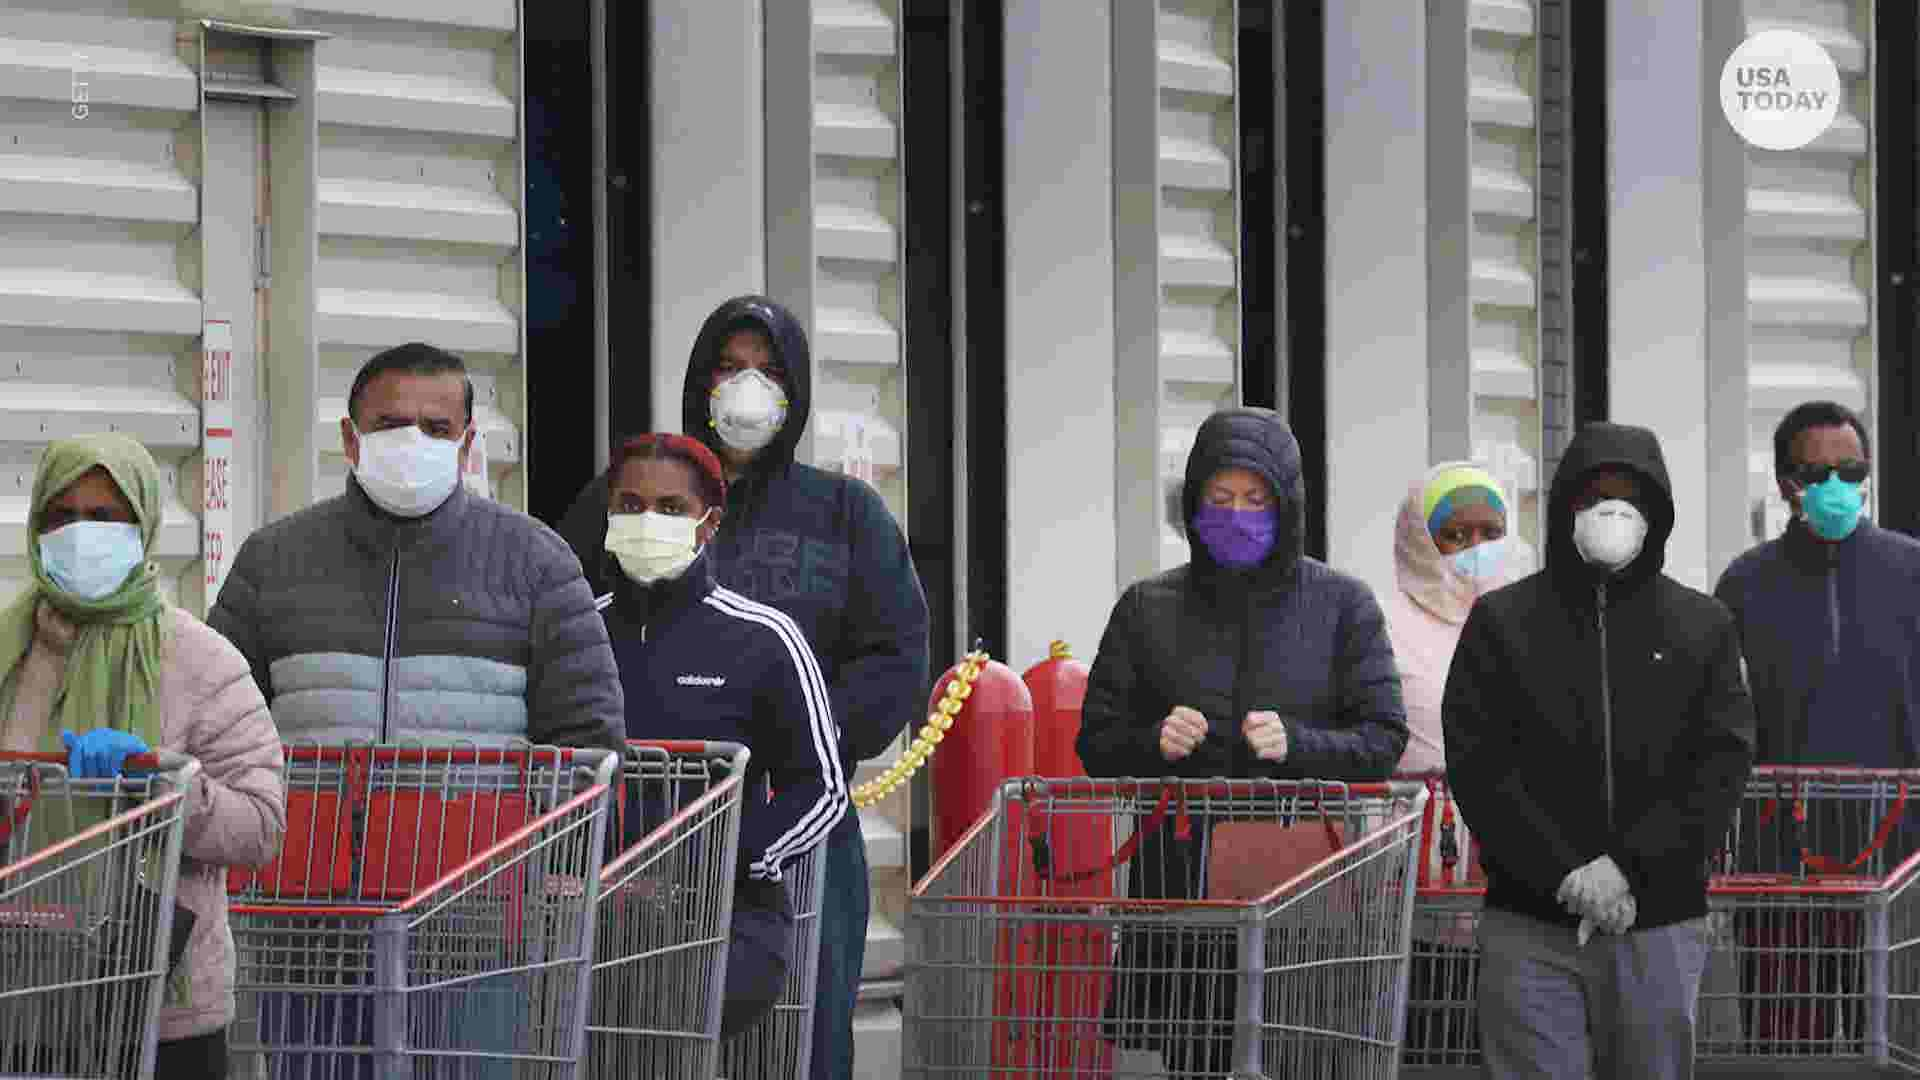 Face masks, limited food court options as Costco goes back to normal hours